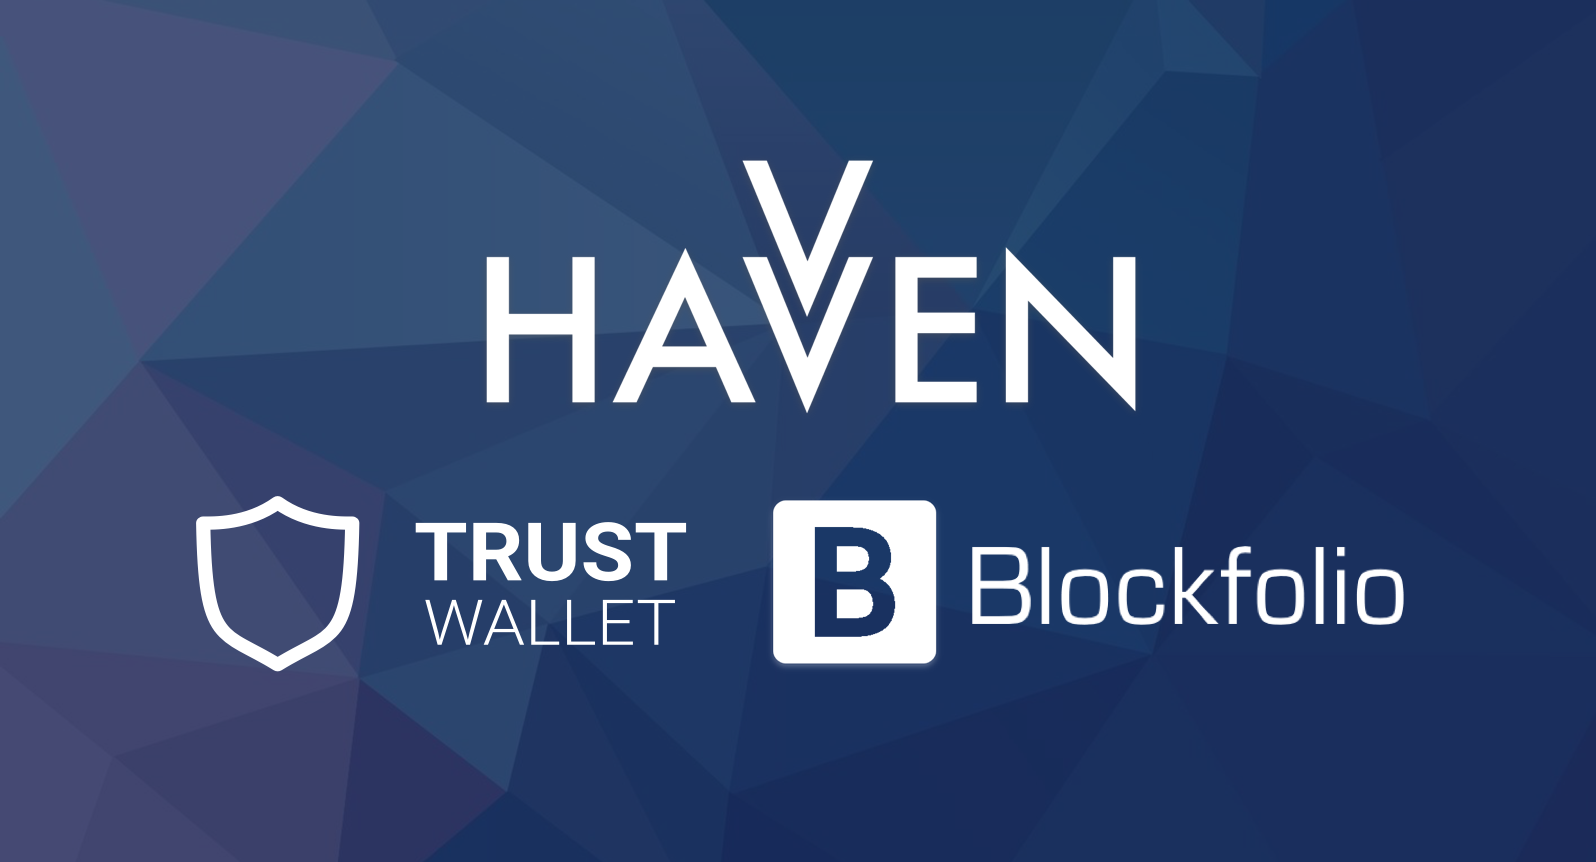 Havven is now on TrustWallet, BlockFolio, and CoinMarketCap